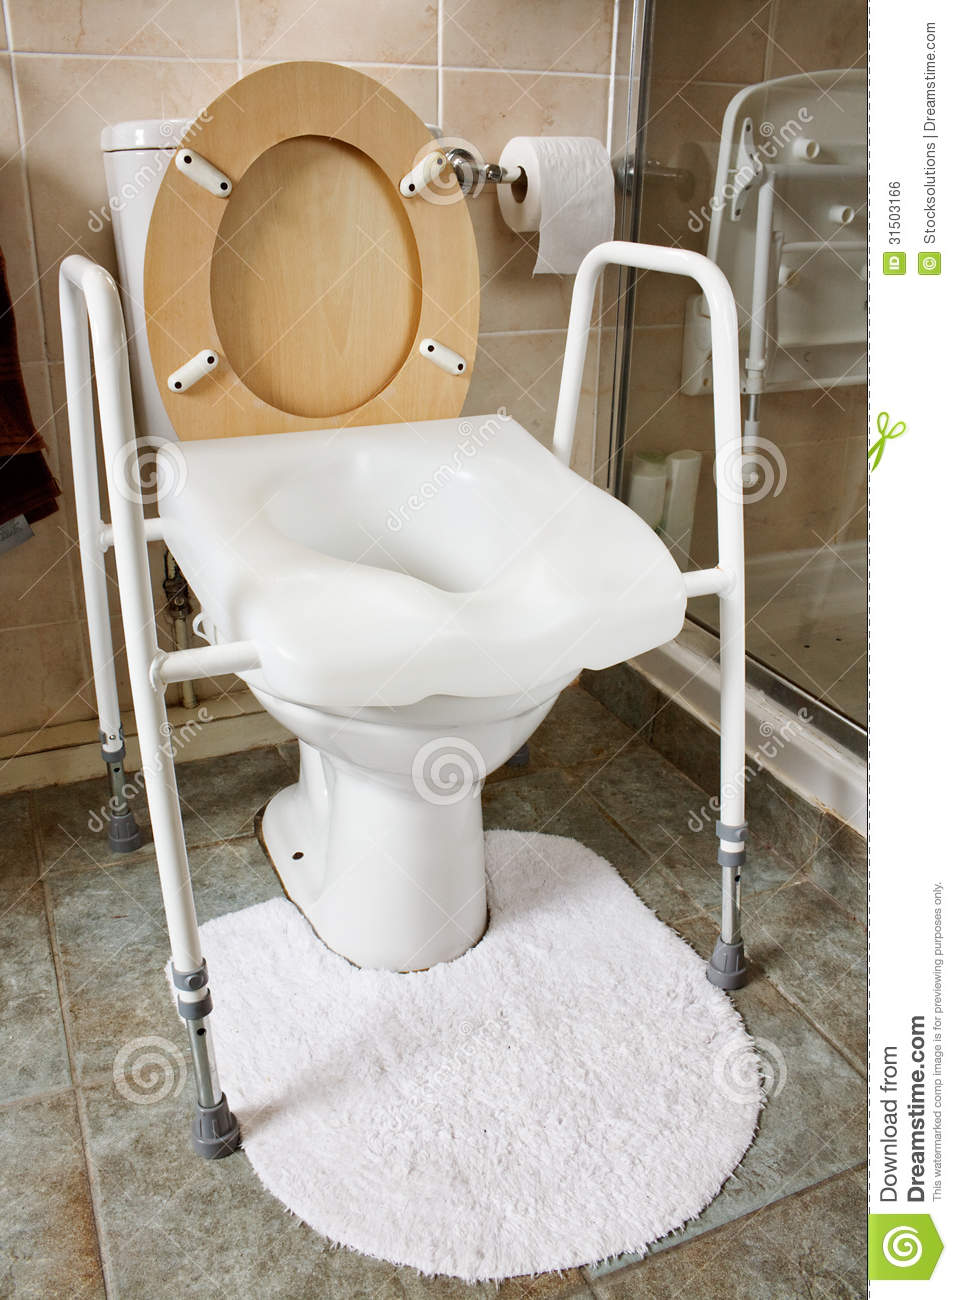 Adjustable Height Toilet Seat Stock Photo Image Of